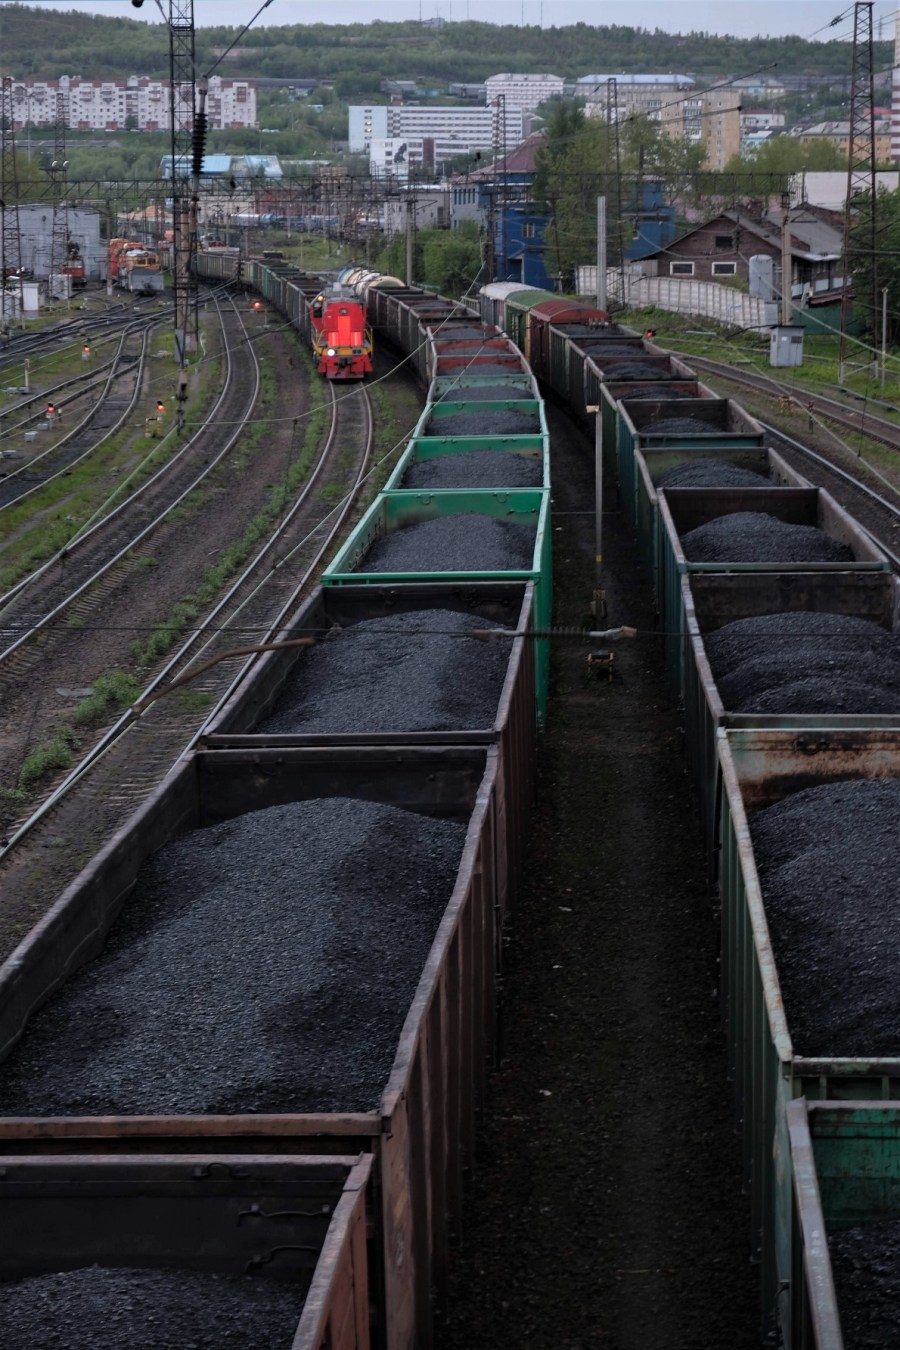 Coal trains at the Port of Murmansk.